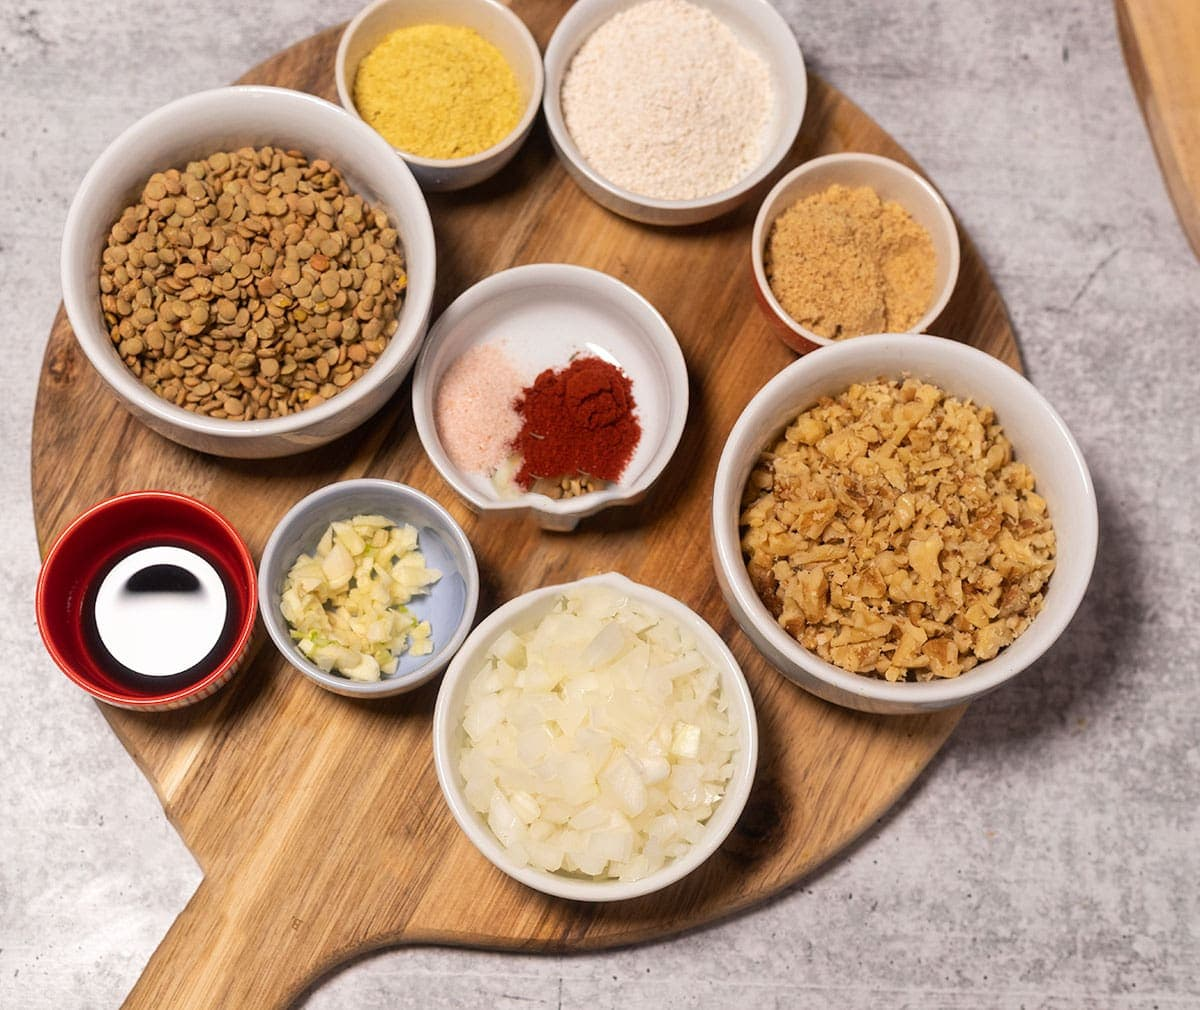 ingredients for making lentil meatballs on a cutting board